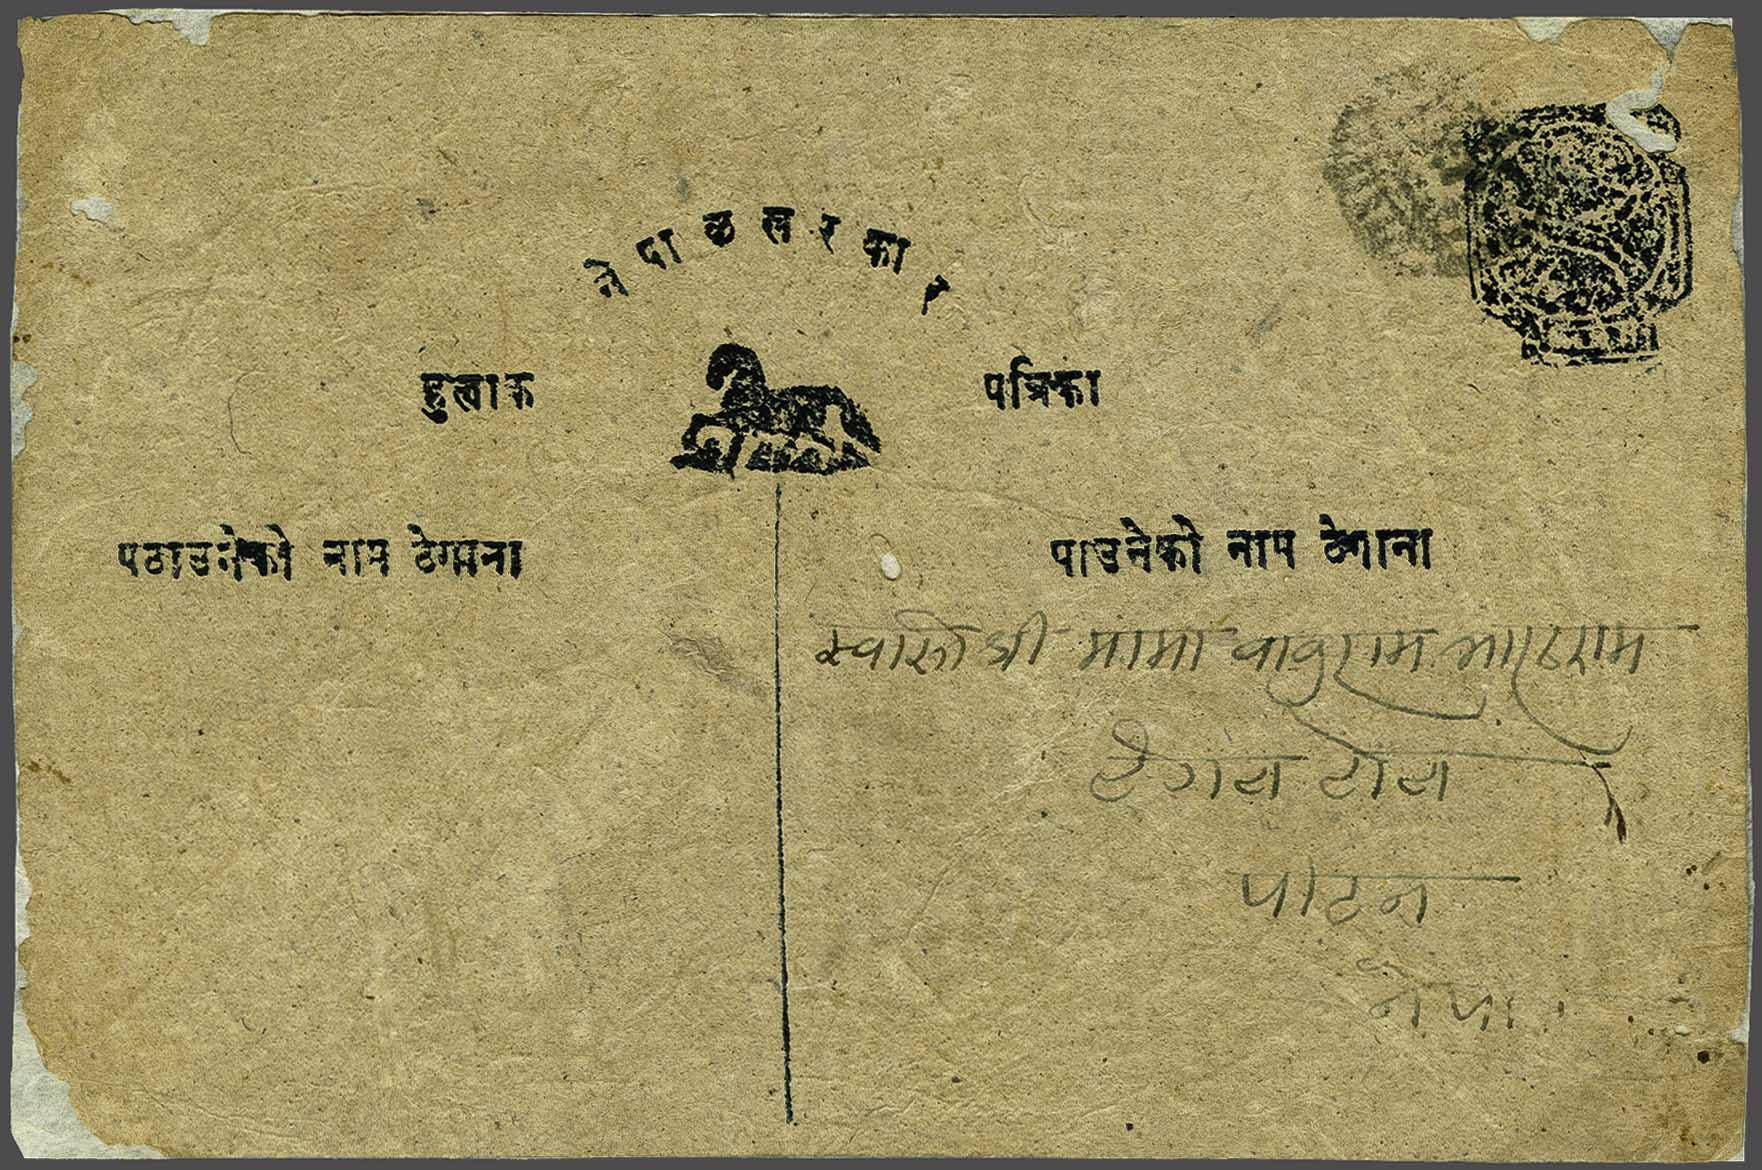 Lot 55 - Great Britain and former colonies Nepal -  Corinphila Veilingen Auction 245-246 Day 1 - Nepal - The Dick van der Wateren Collection, Foreign countries - Single lots, Picture postcards